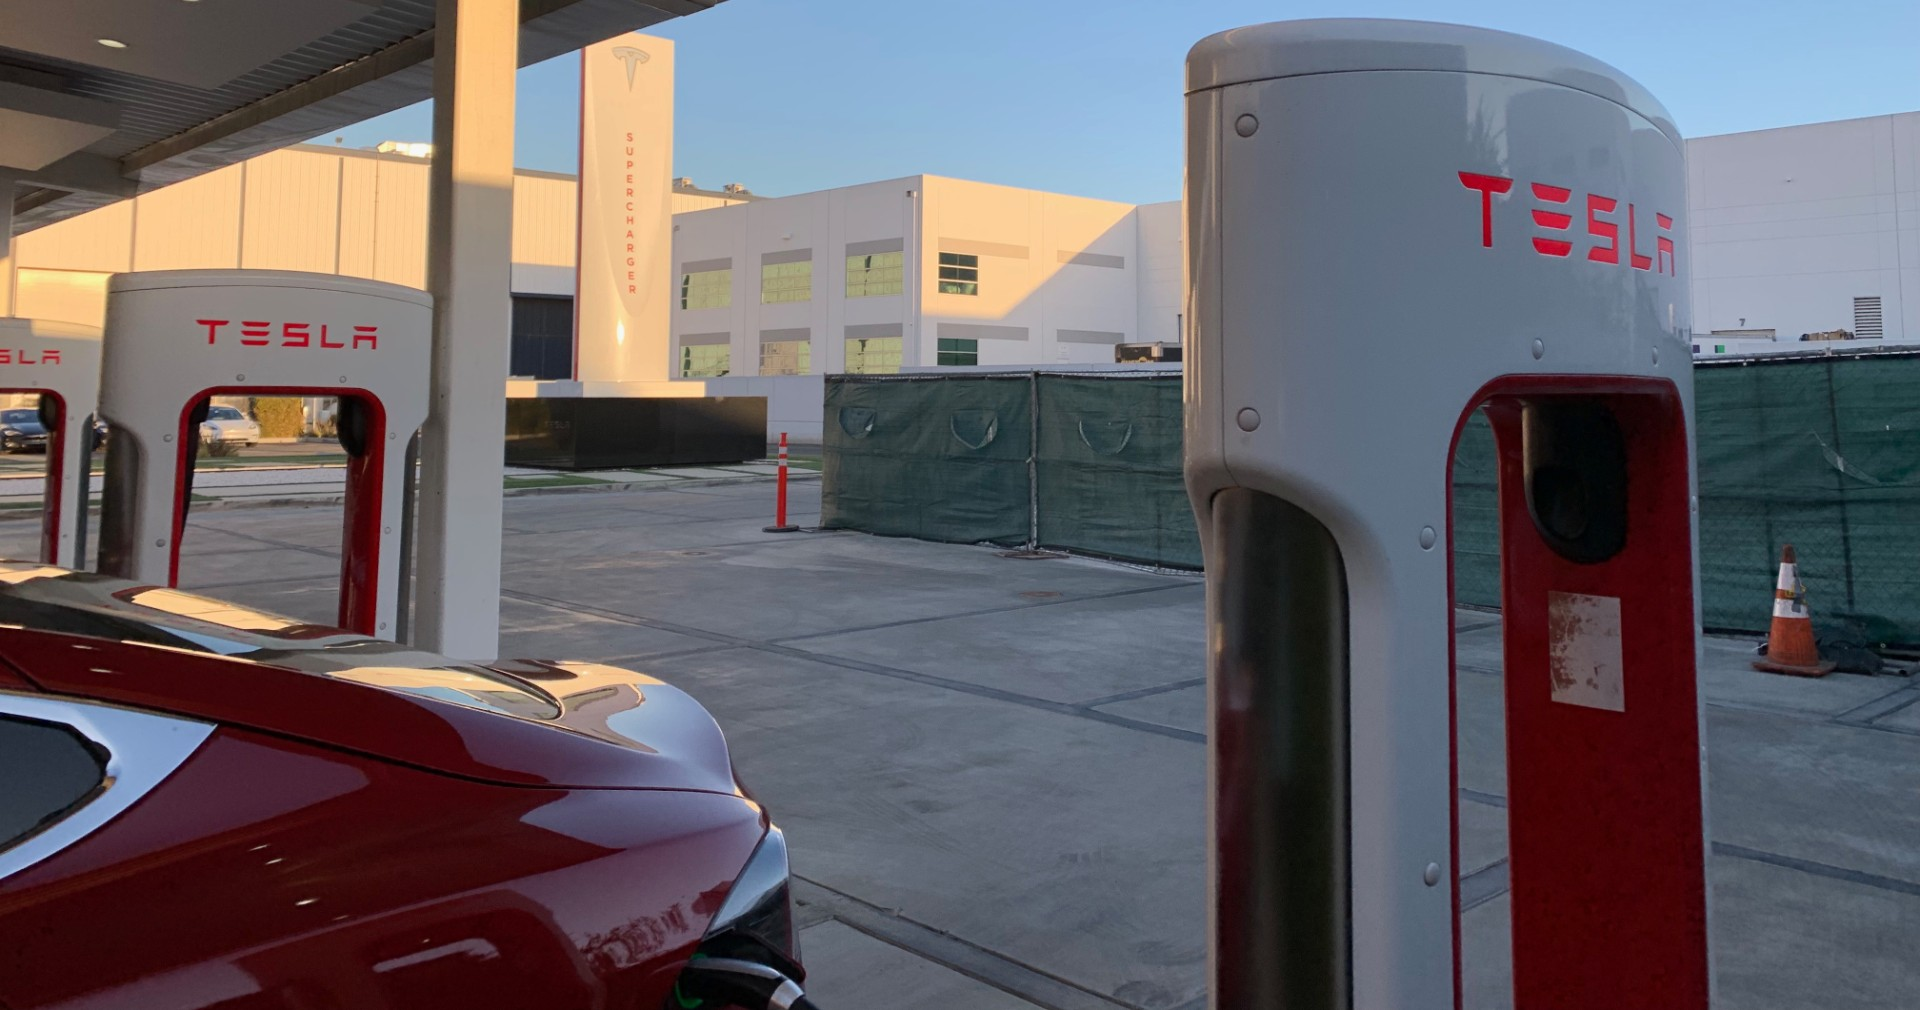 tesla-supercharger-v3-la-design-center-5a